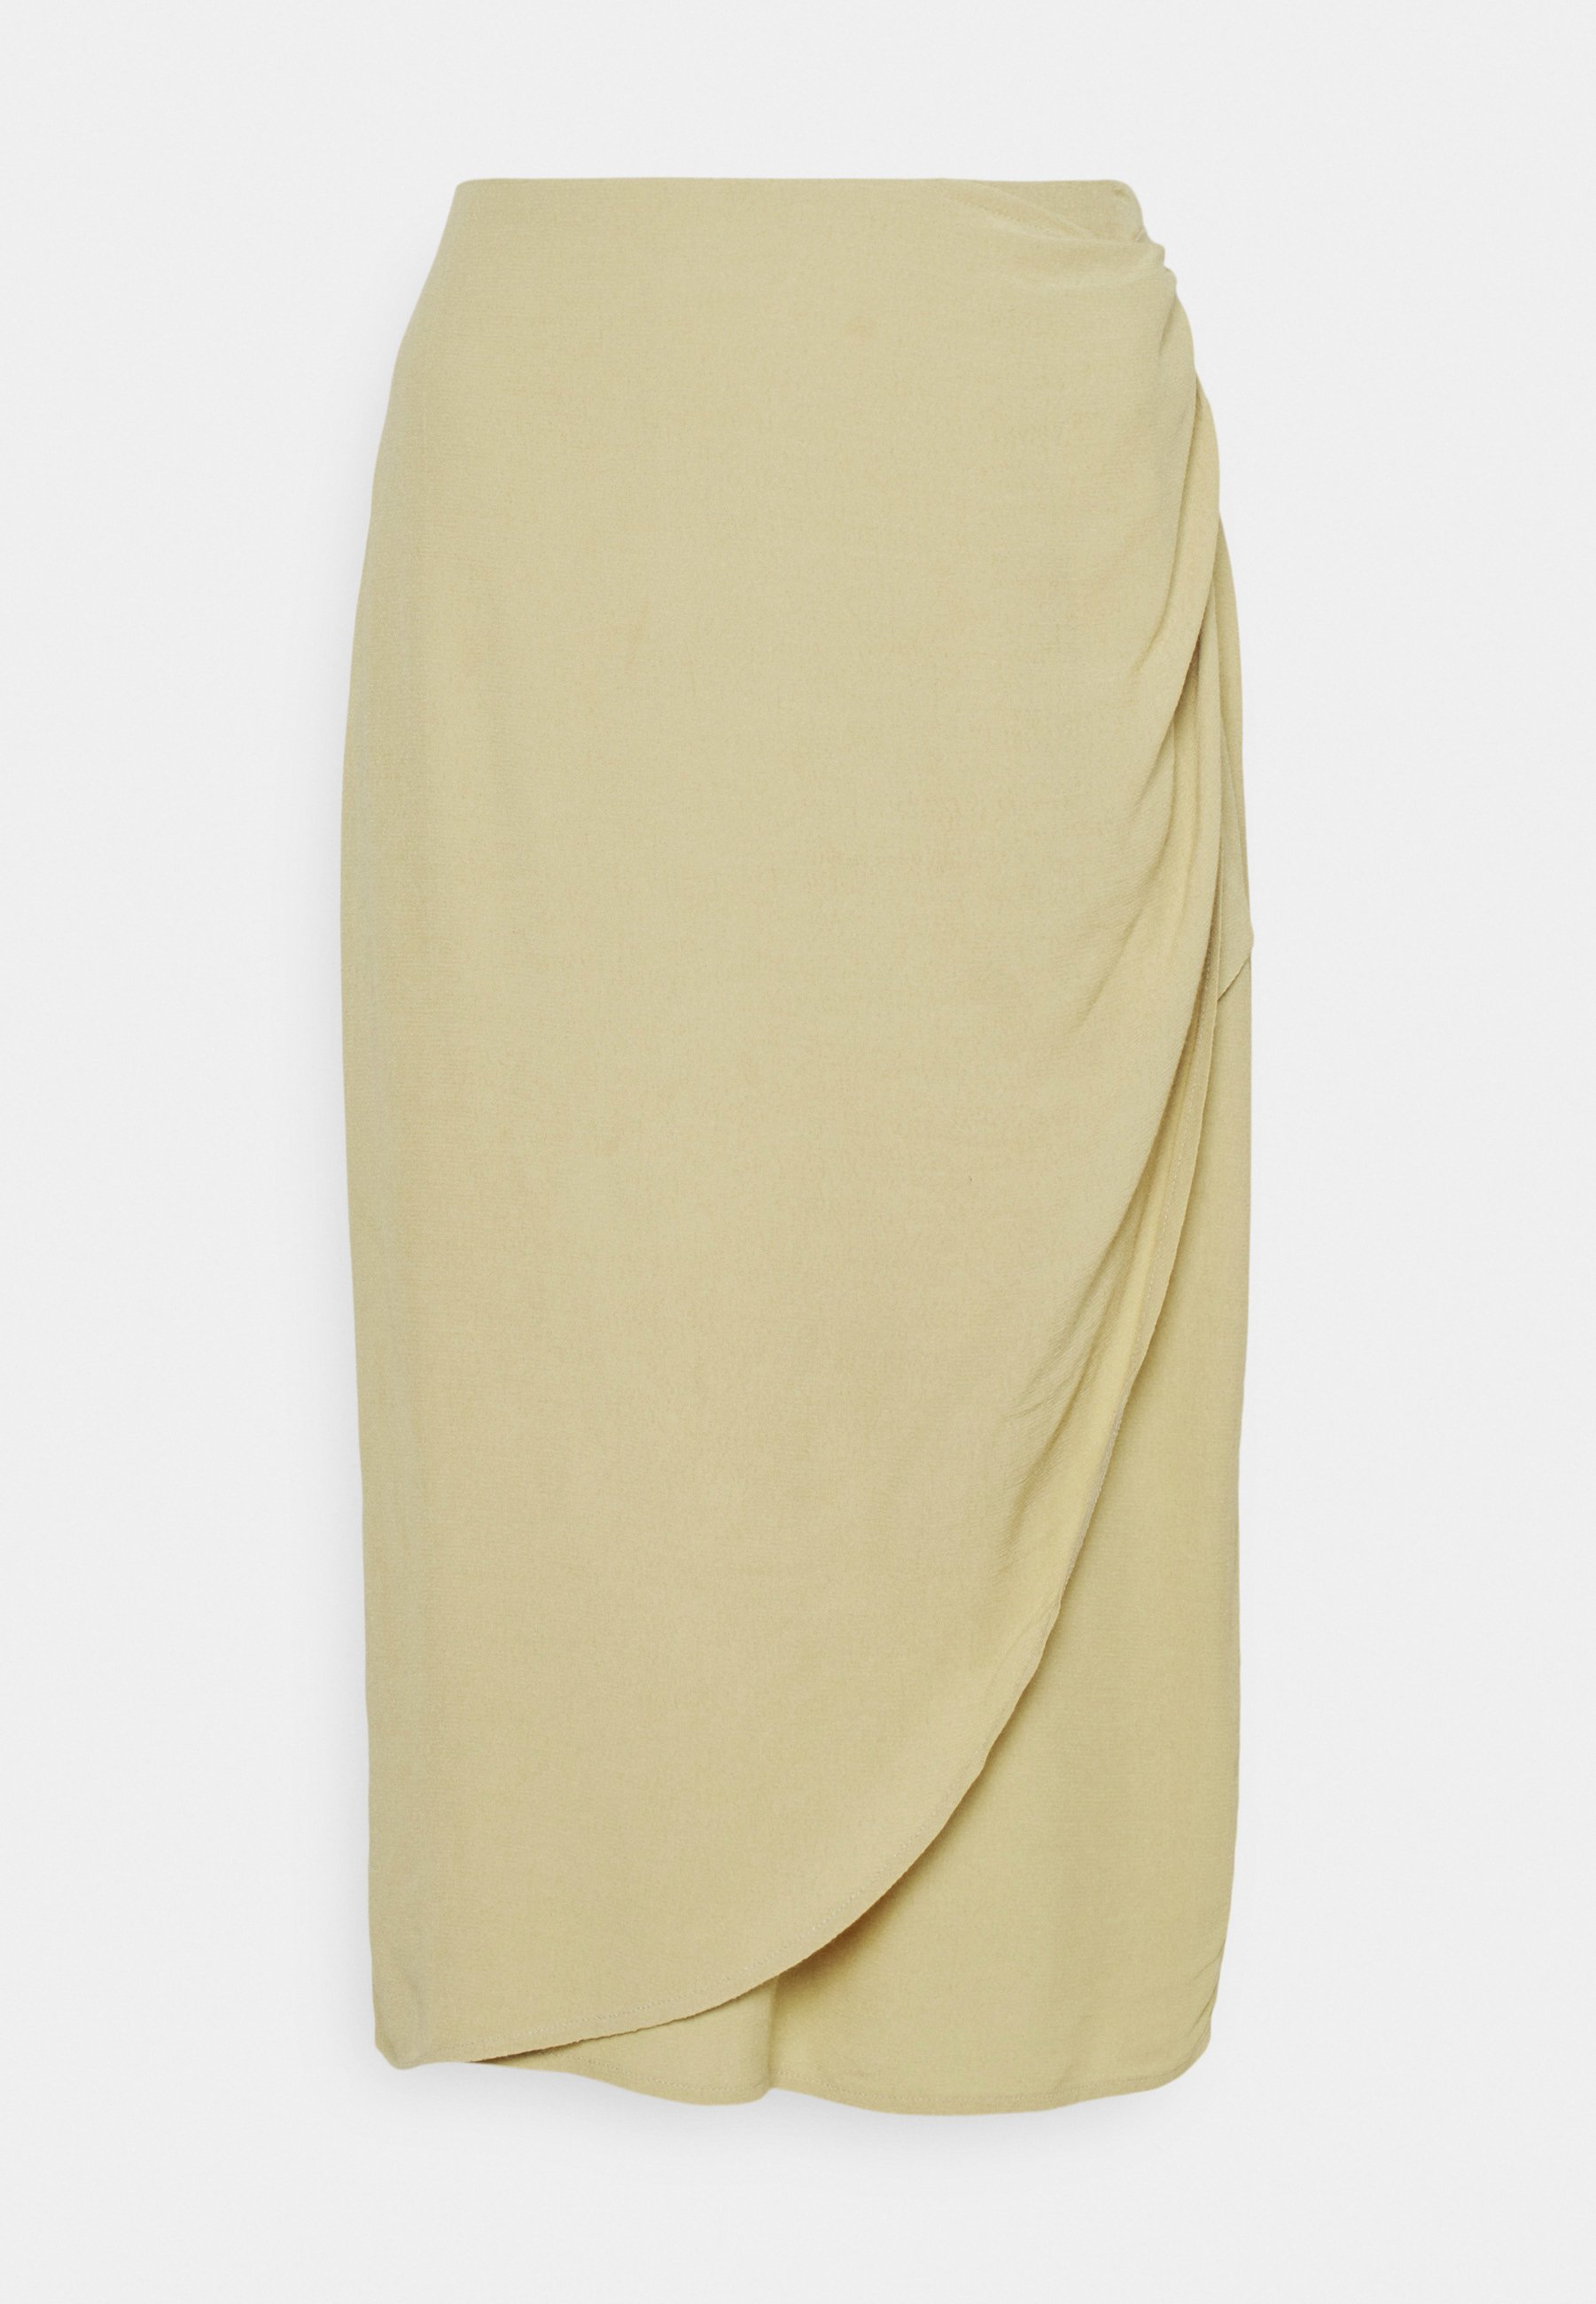 Femme SKIRT WITH WRAP DETAIL - Jupe portefeuille